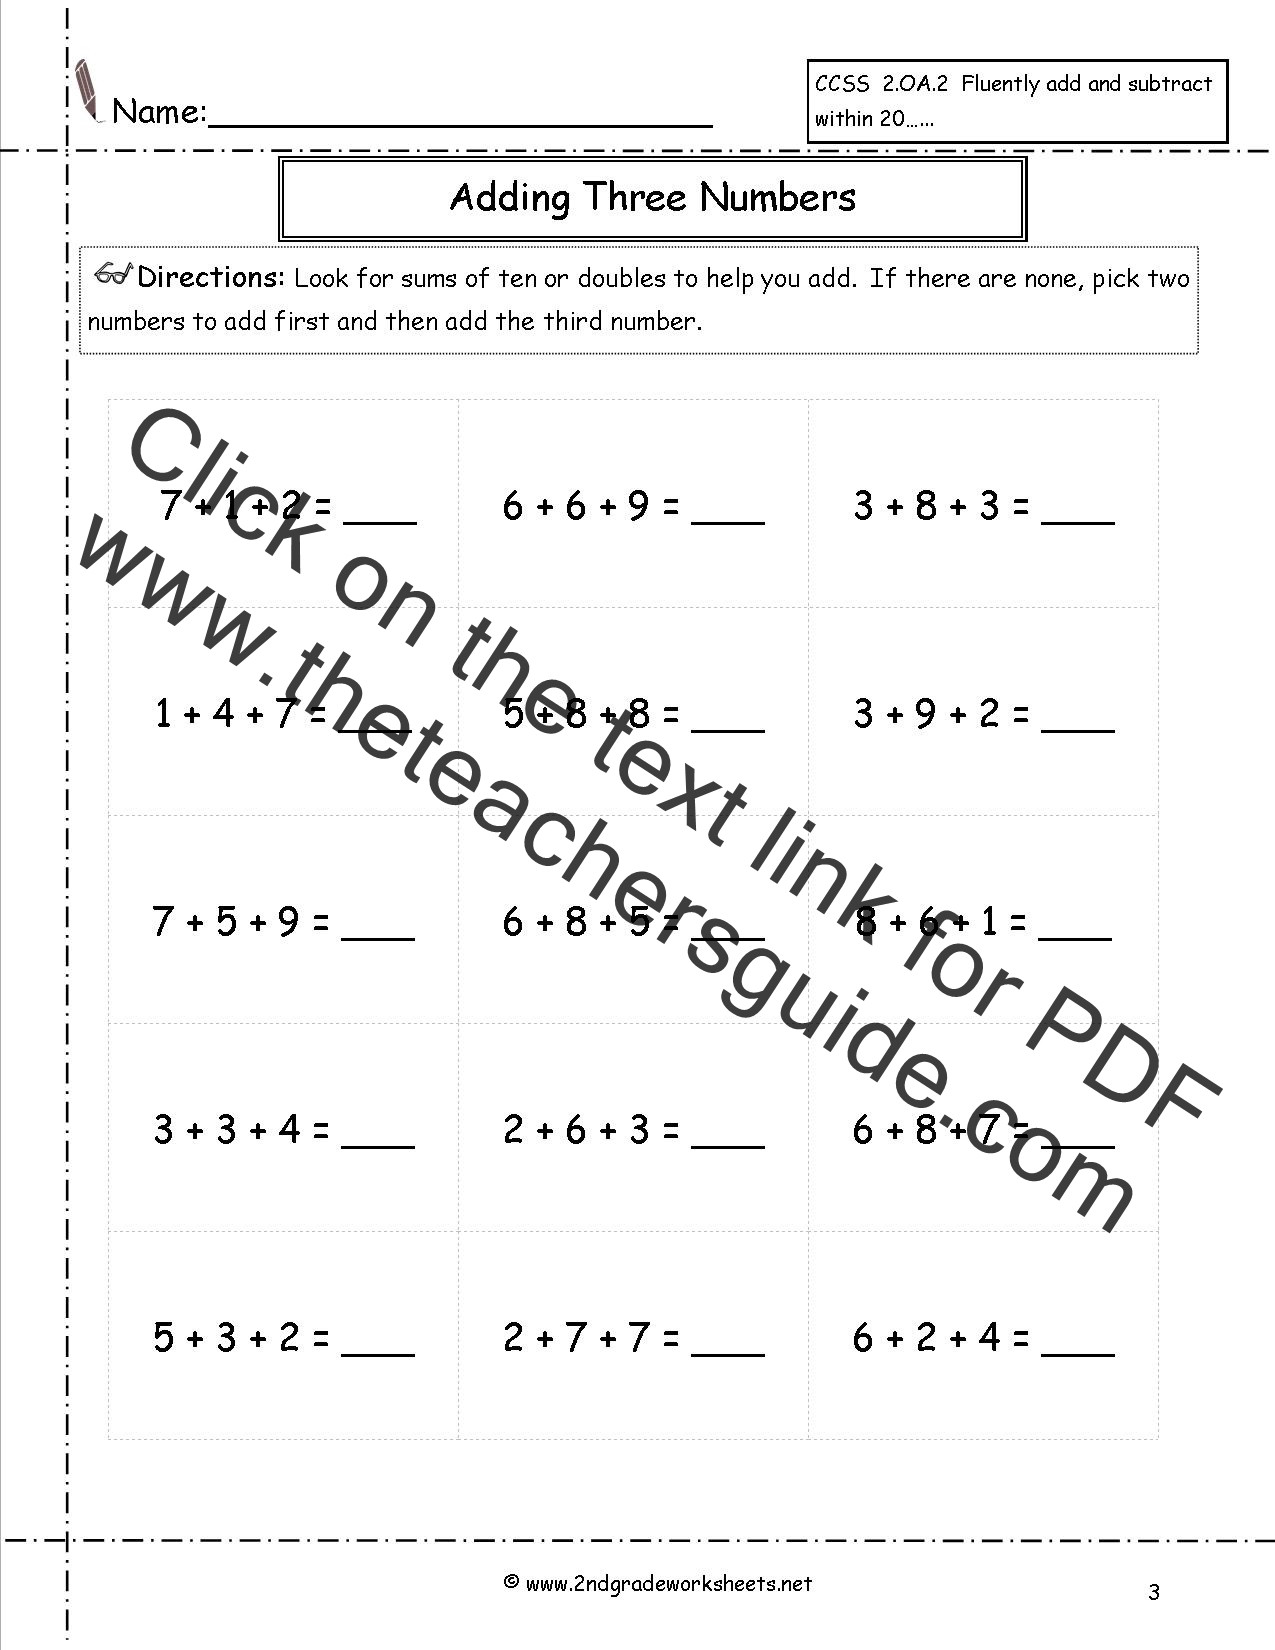 Adding Three Number Worksheets Adding Three or More Single Digit Numbers Worksheets